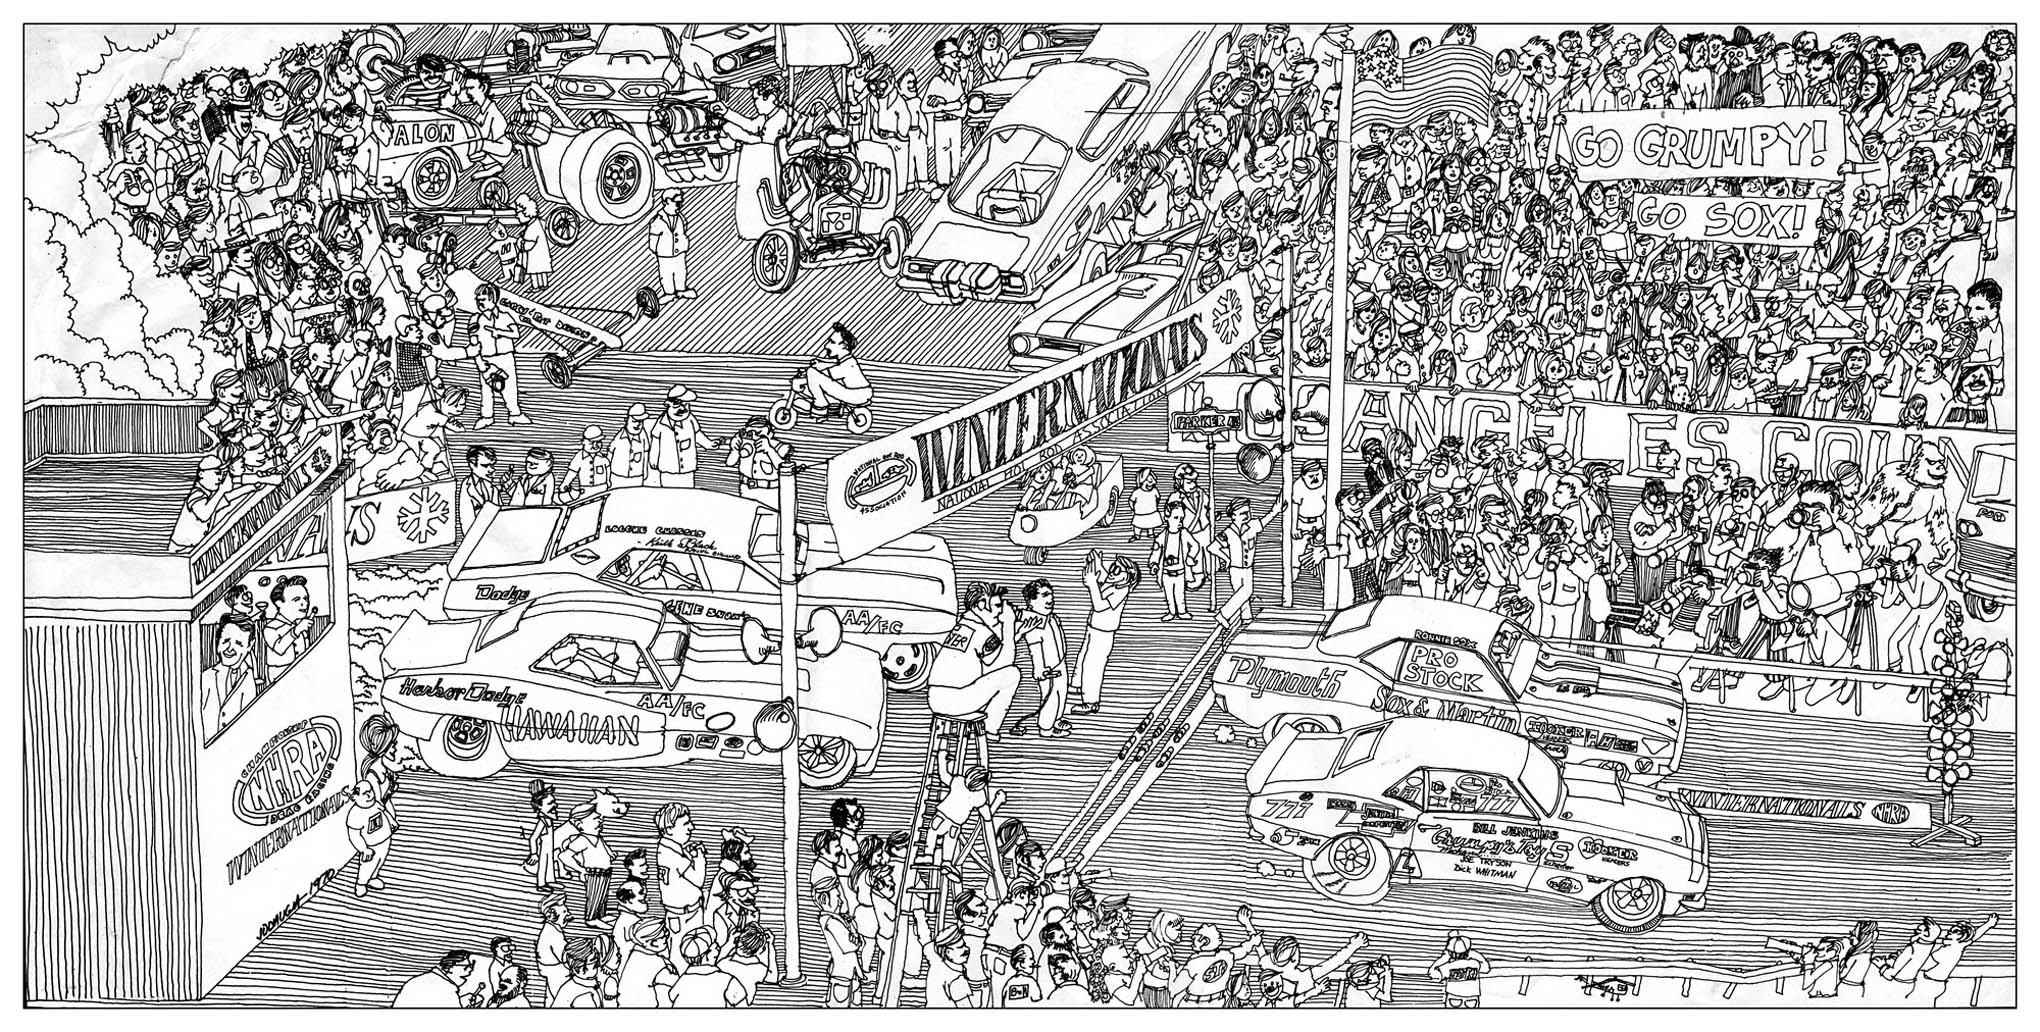 This illustration for Car Craft's coverage of the 1970 Winternationals is one of John's favorites. John filled the grandstands and pit area with likenesses of drag-racing and pop-culture personalities along with assorted generic figures.